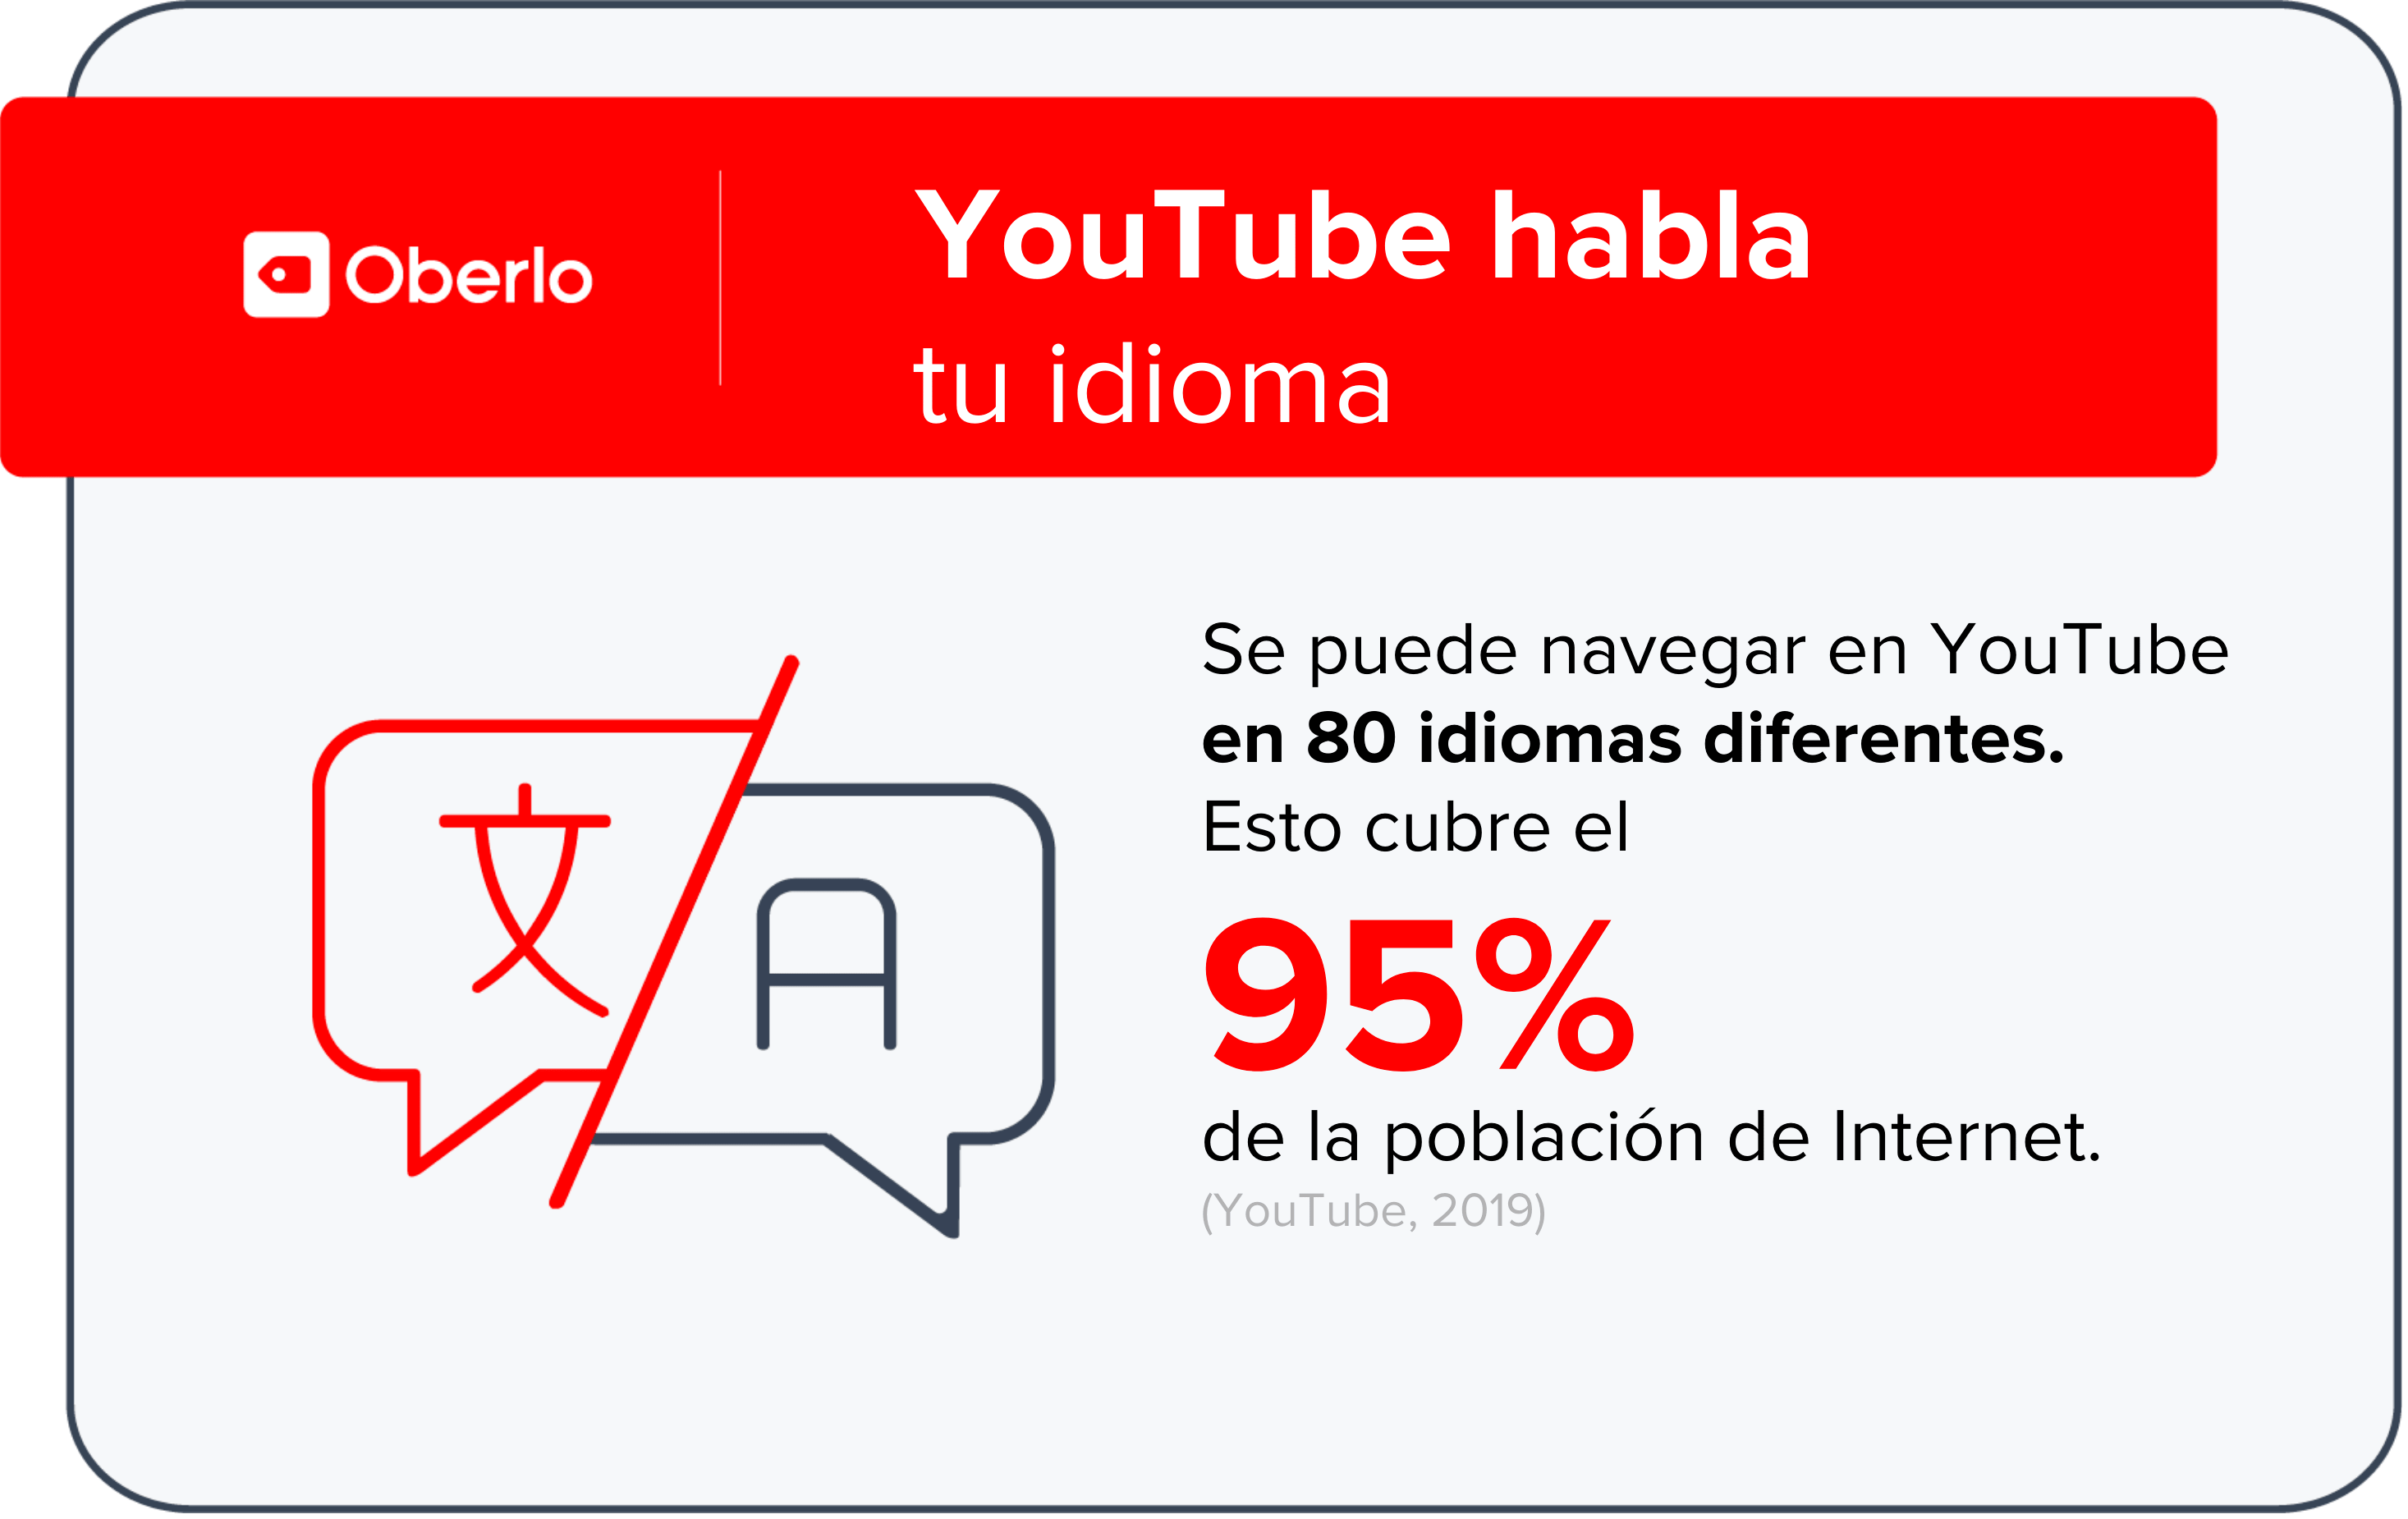 Estadisticas-YouTube-habla-tu-idioma